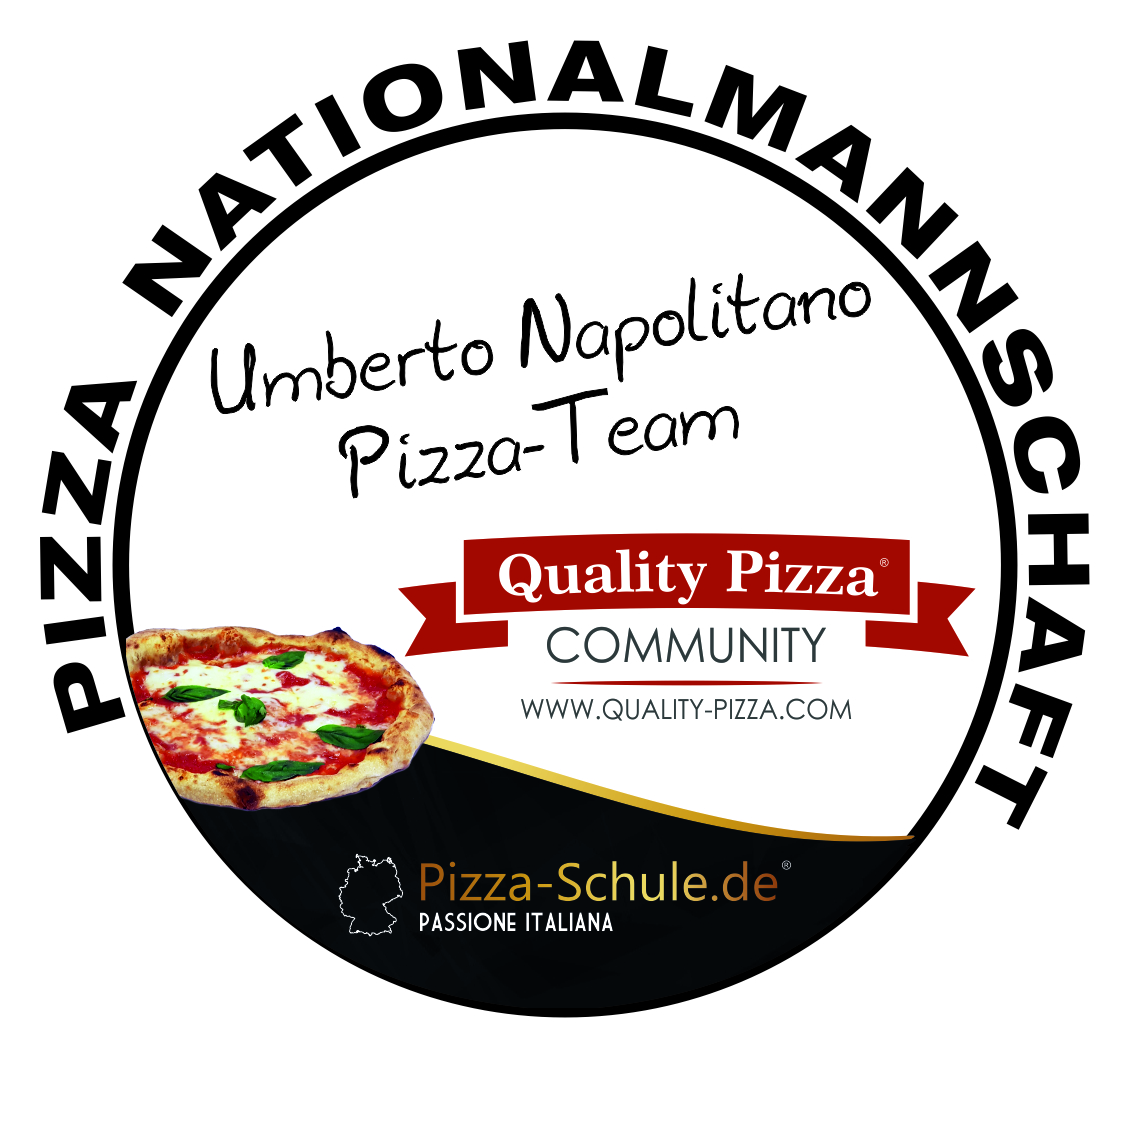 Pizza Nationalmannschaft Team Umberto Napolitano